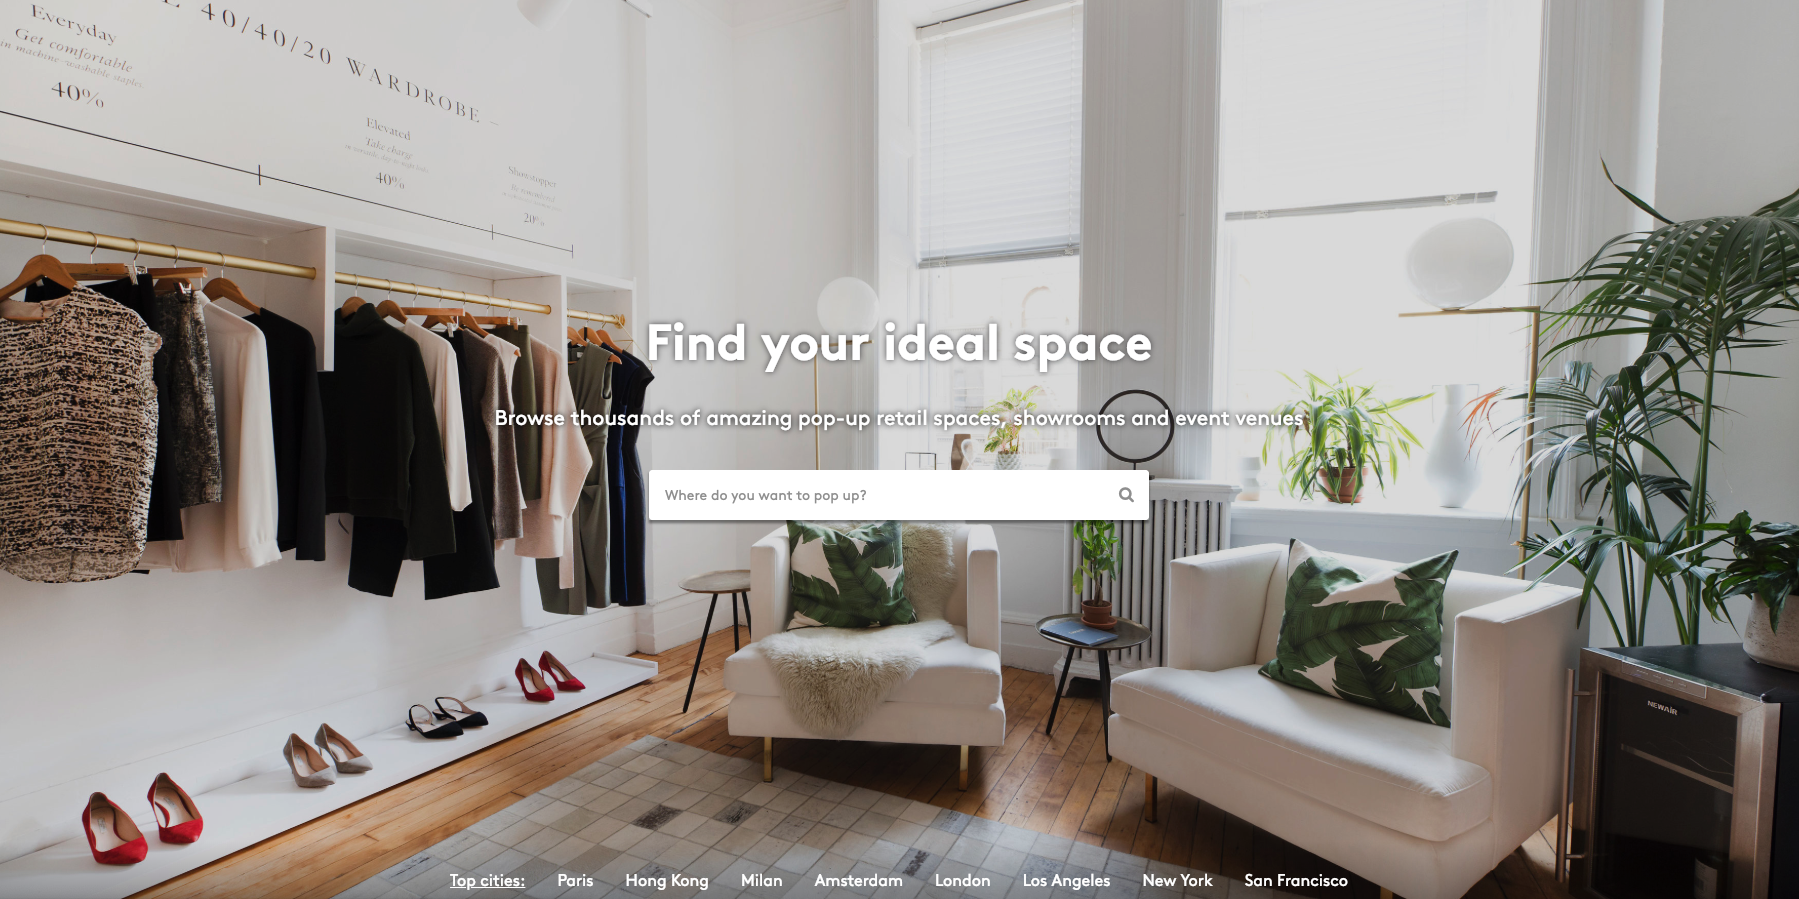 storefront - Storefront's marketplace makes retail locations accessible to any brand in the world by activating property owners retail space with a single click.